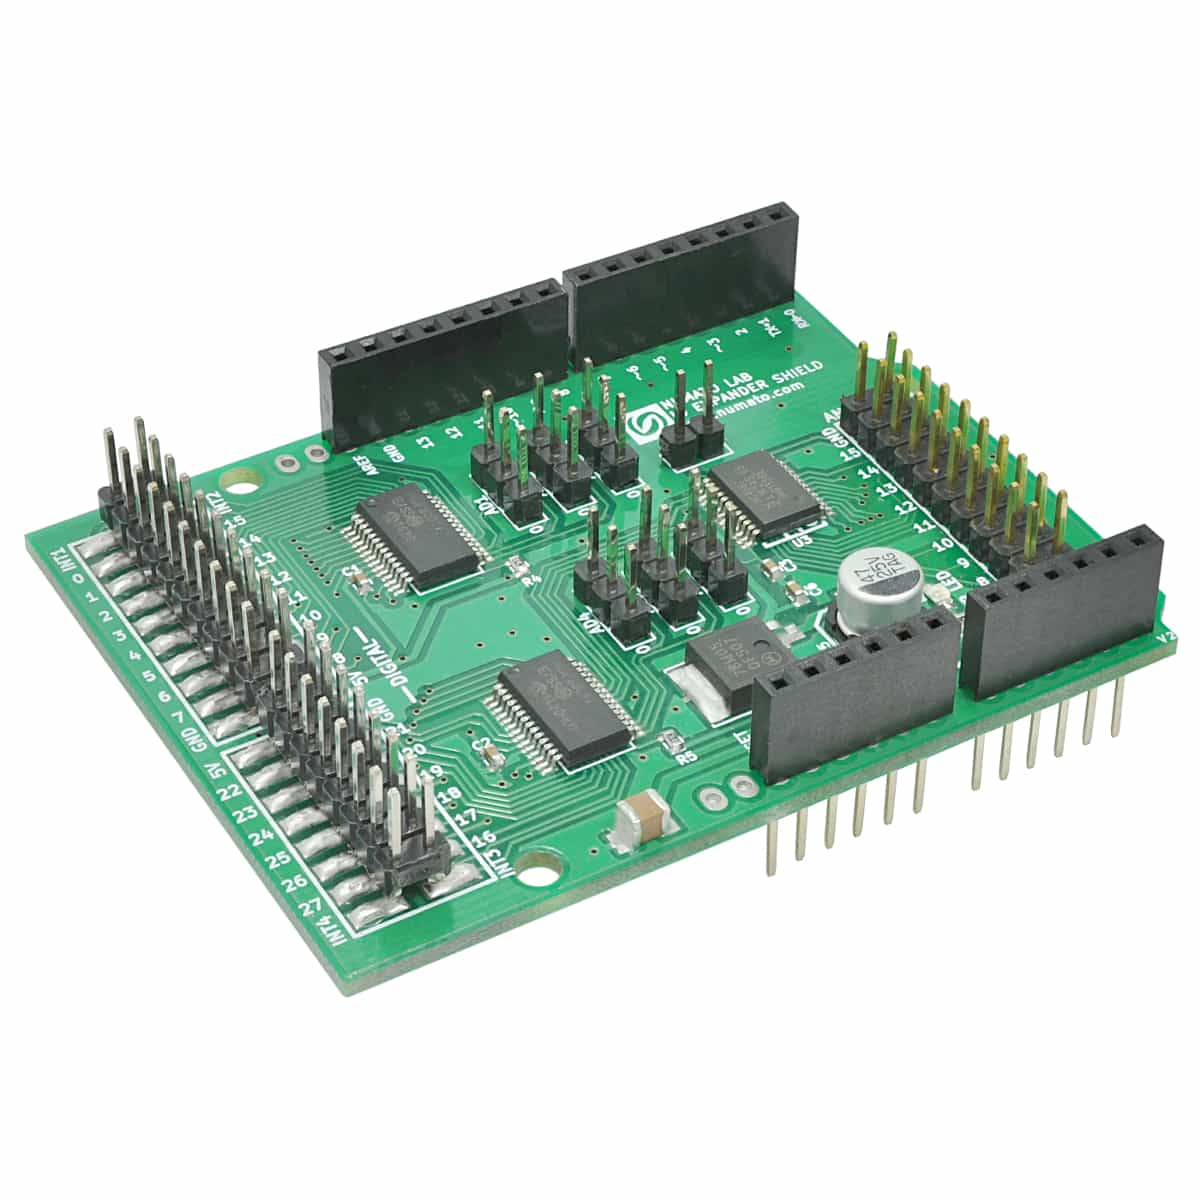 Ds1307 Real Time Clock Breakout I2c Interface Devices Numato Lab Arduino Shield Schematic Digital And Analog Io Expander